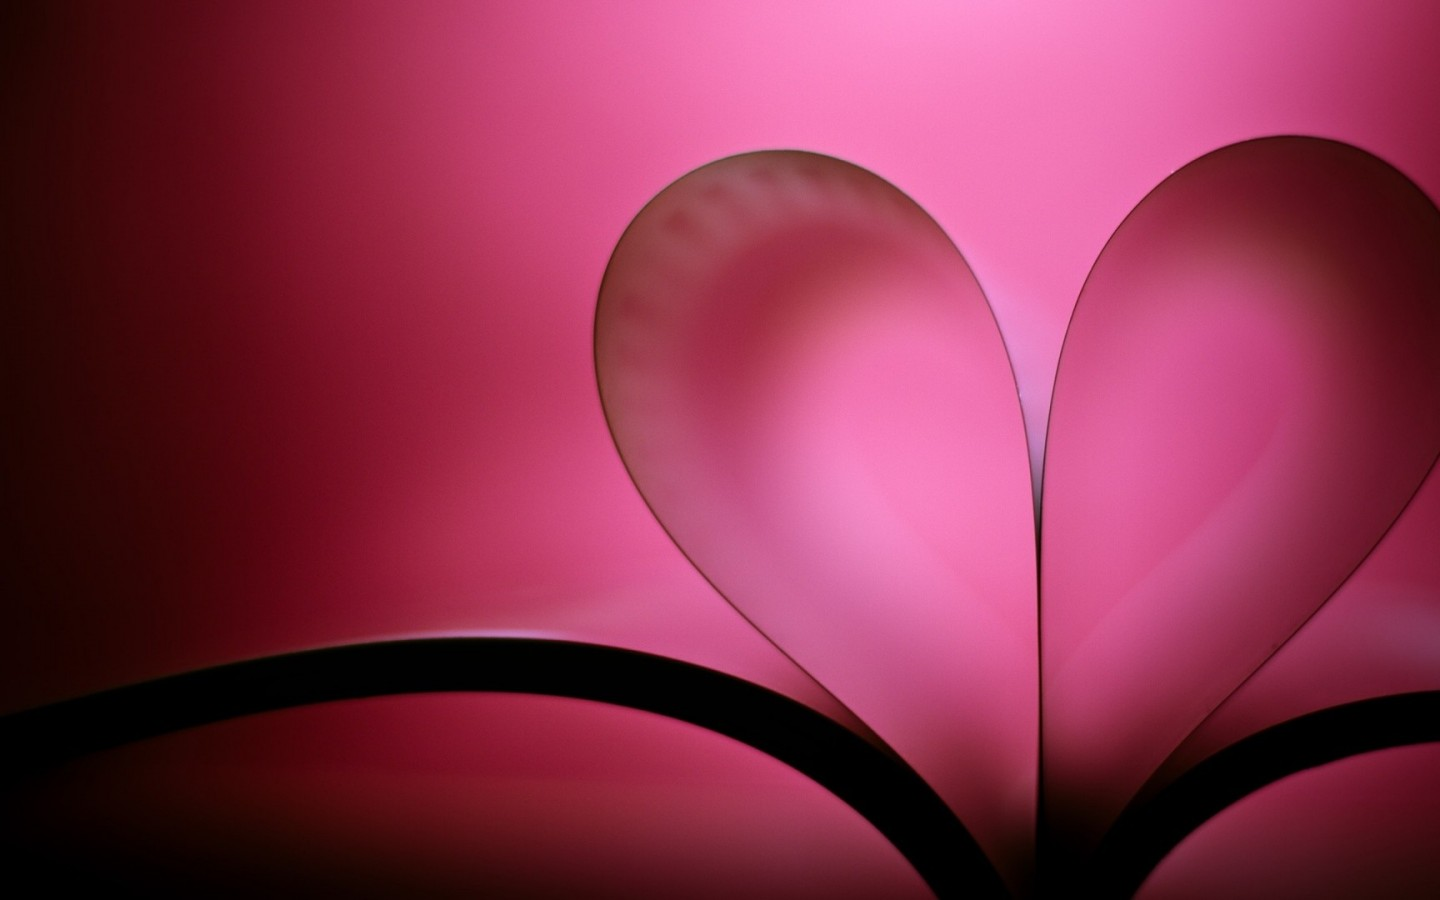 Best Love Wallpaper For Laptop : HD Love Wallpapers for Laptop - WallpaperSafari